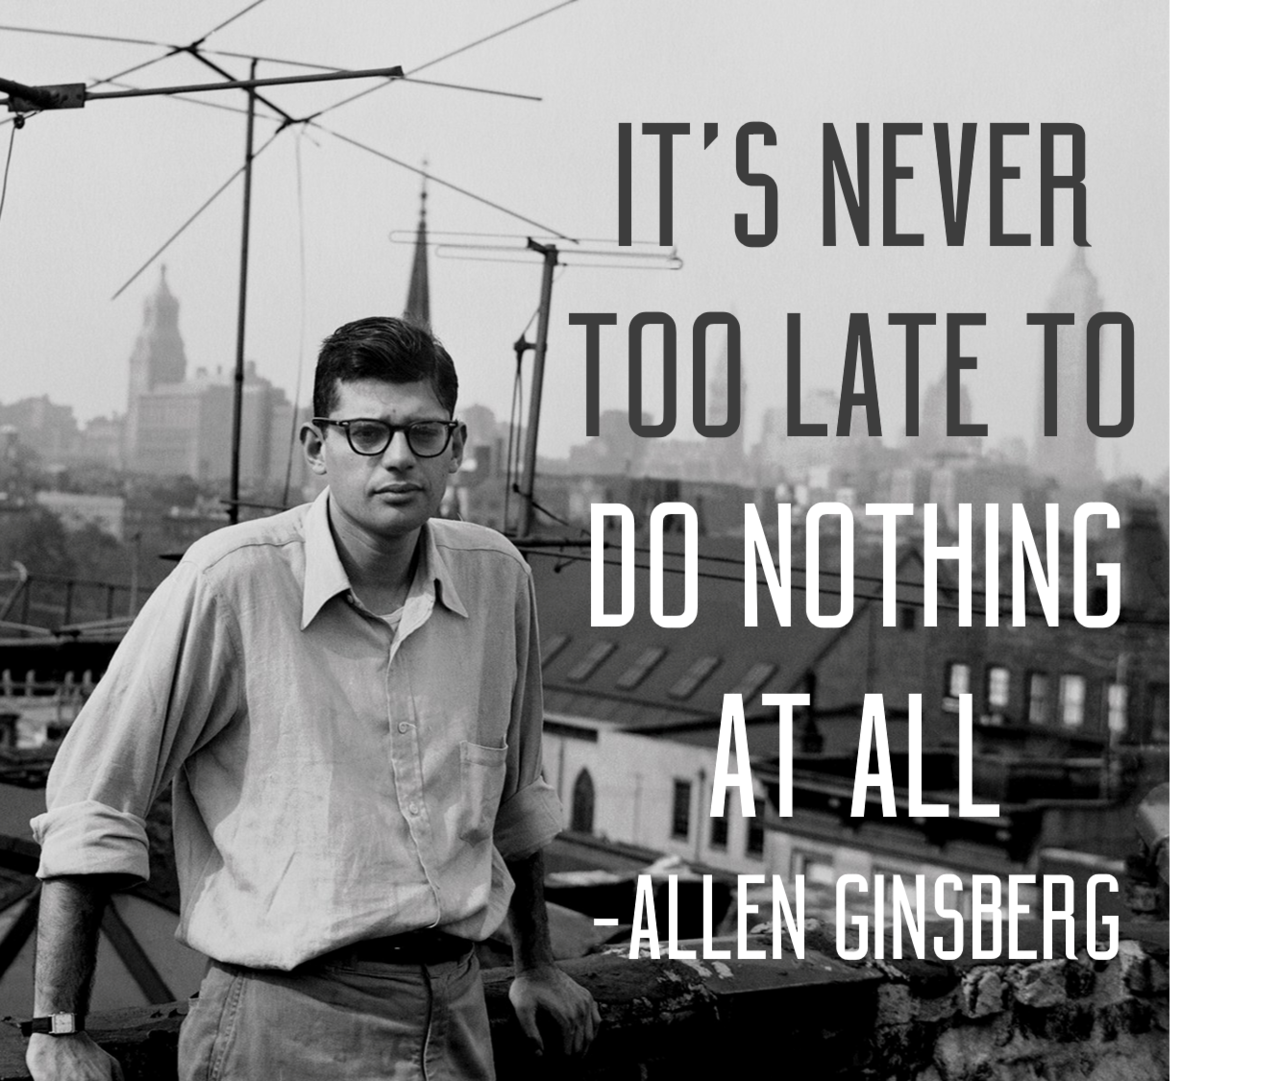 Late s quote It's never too late to do nothing at all.